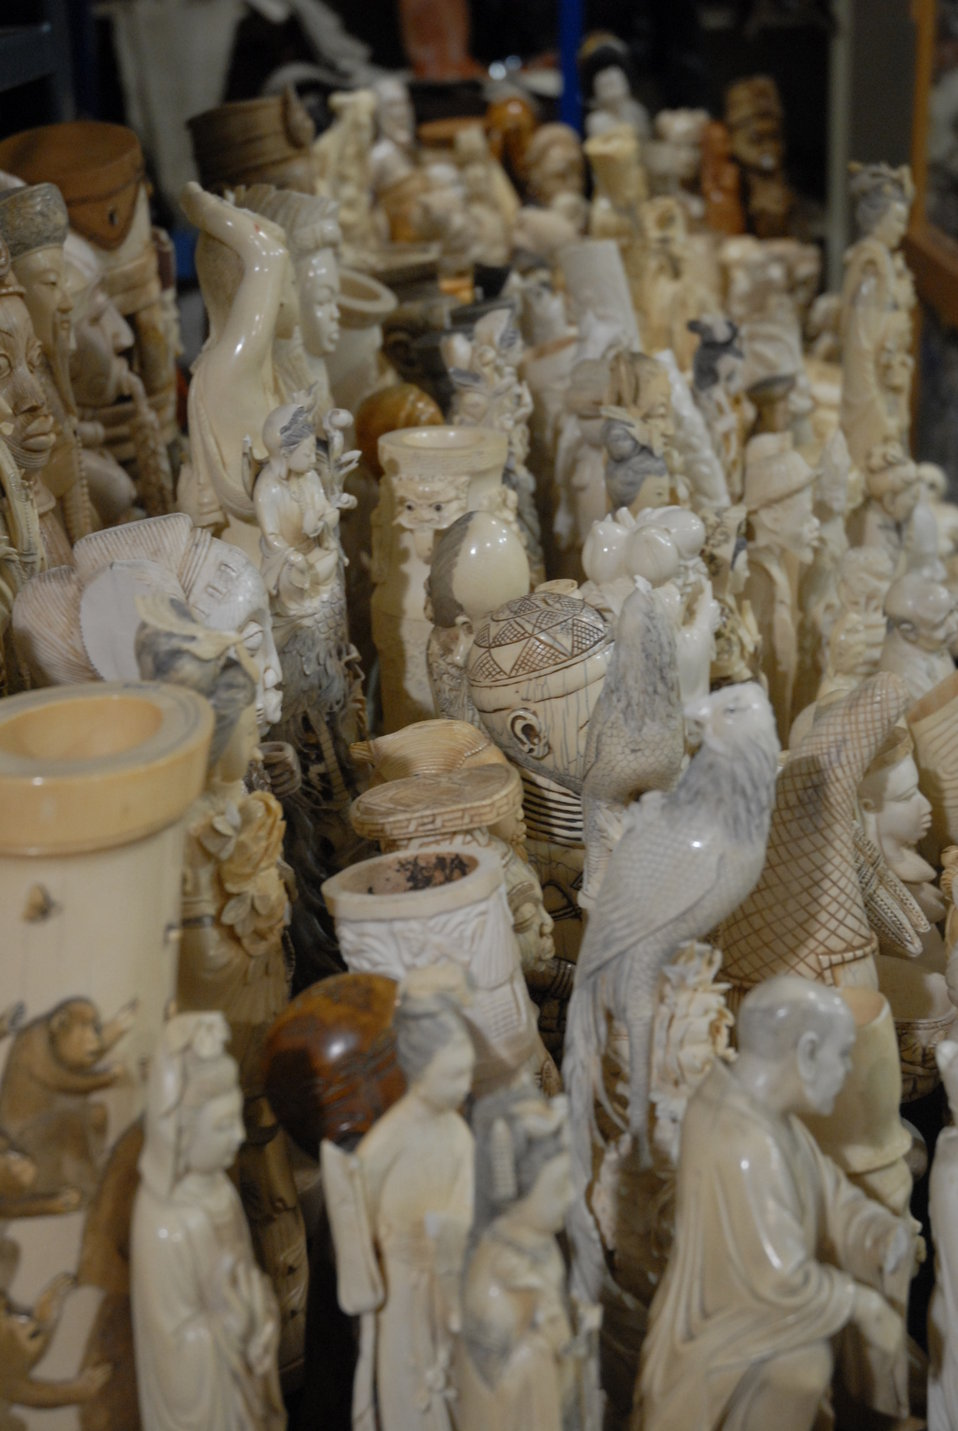 Intricate carvings of contraband ivory slated for destruction in the crush.